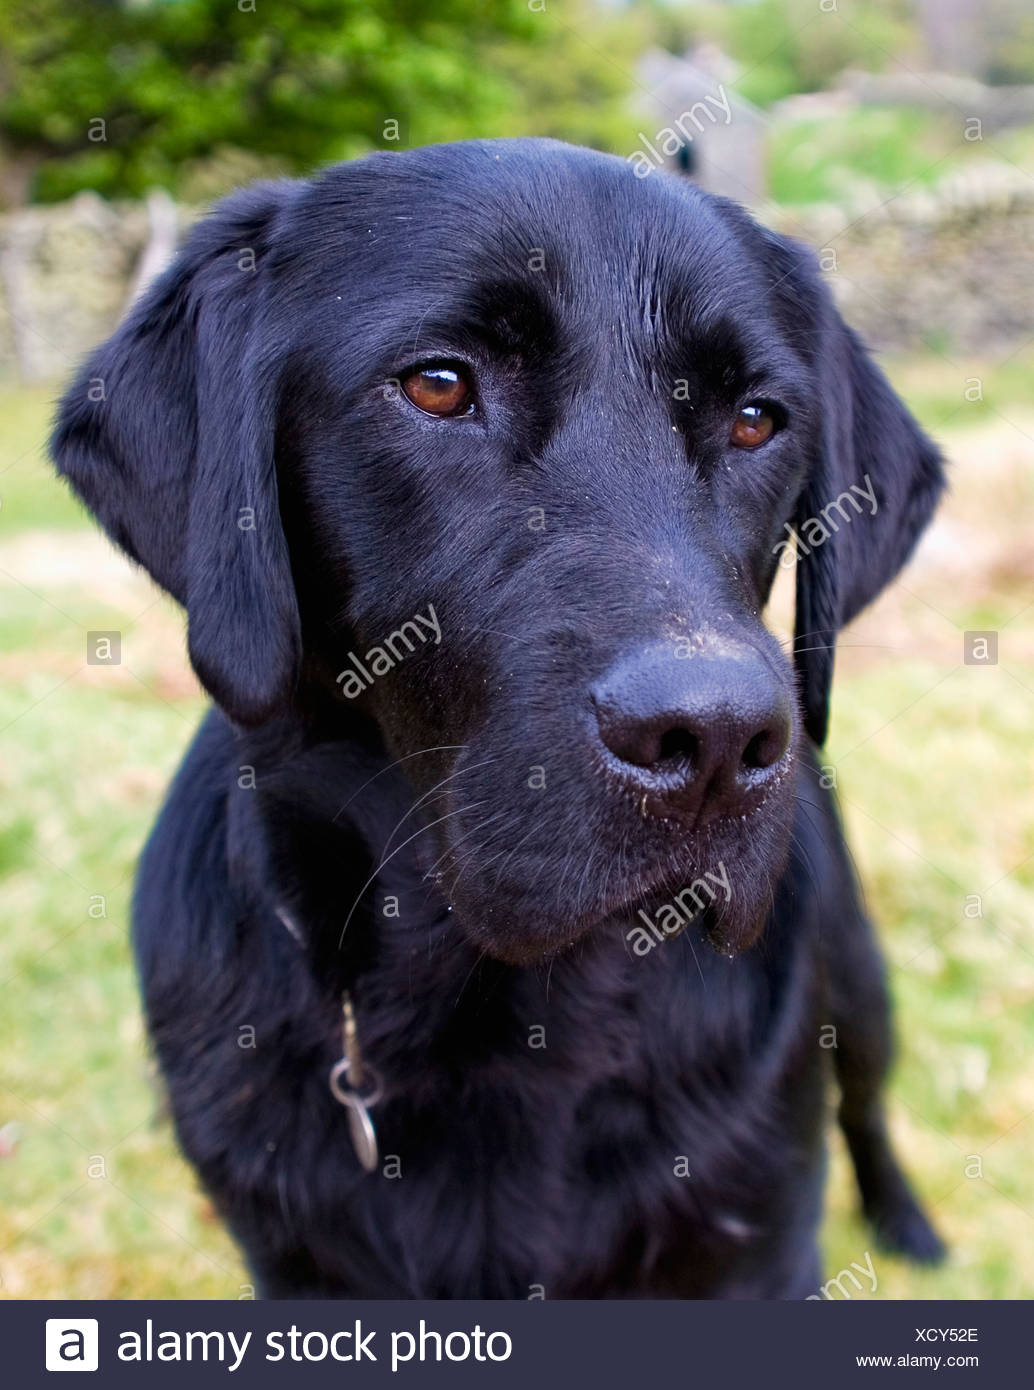 Black Labrador; Lake District Cumbria England - Stock Image